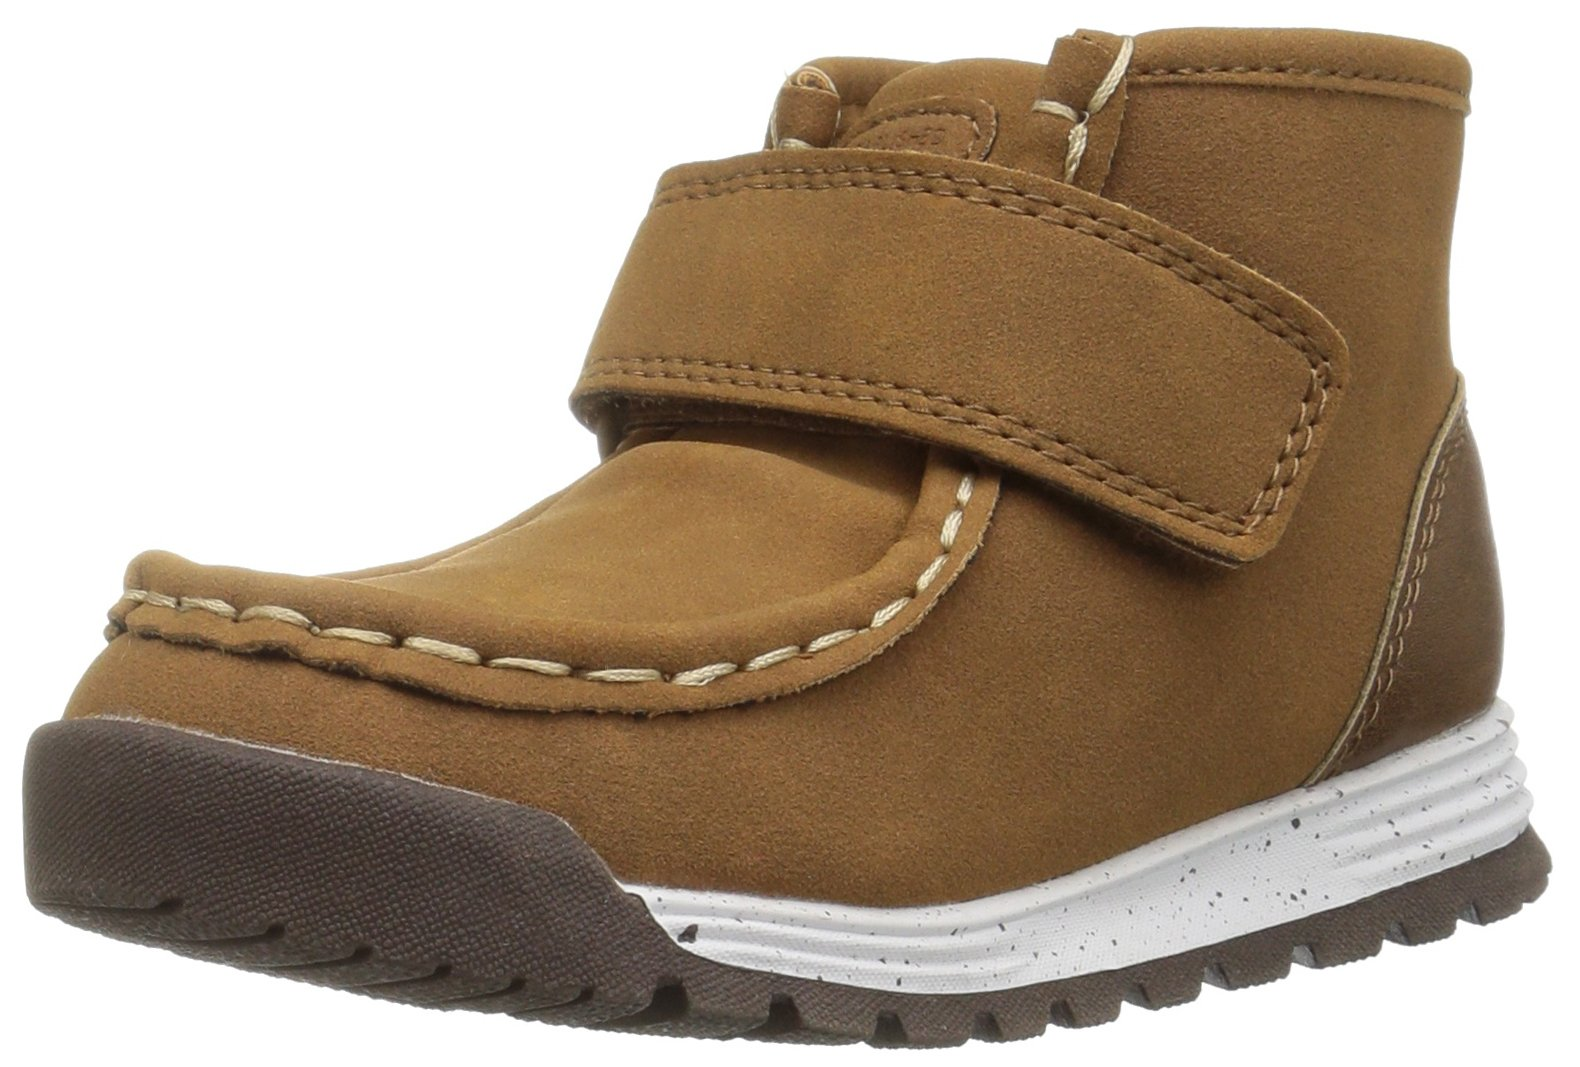 Carter's Boys' AX Fashion Boot, Brown, 11 M US Little Kid